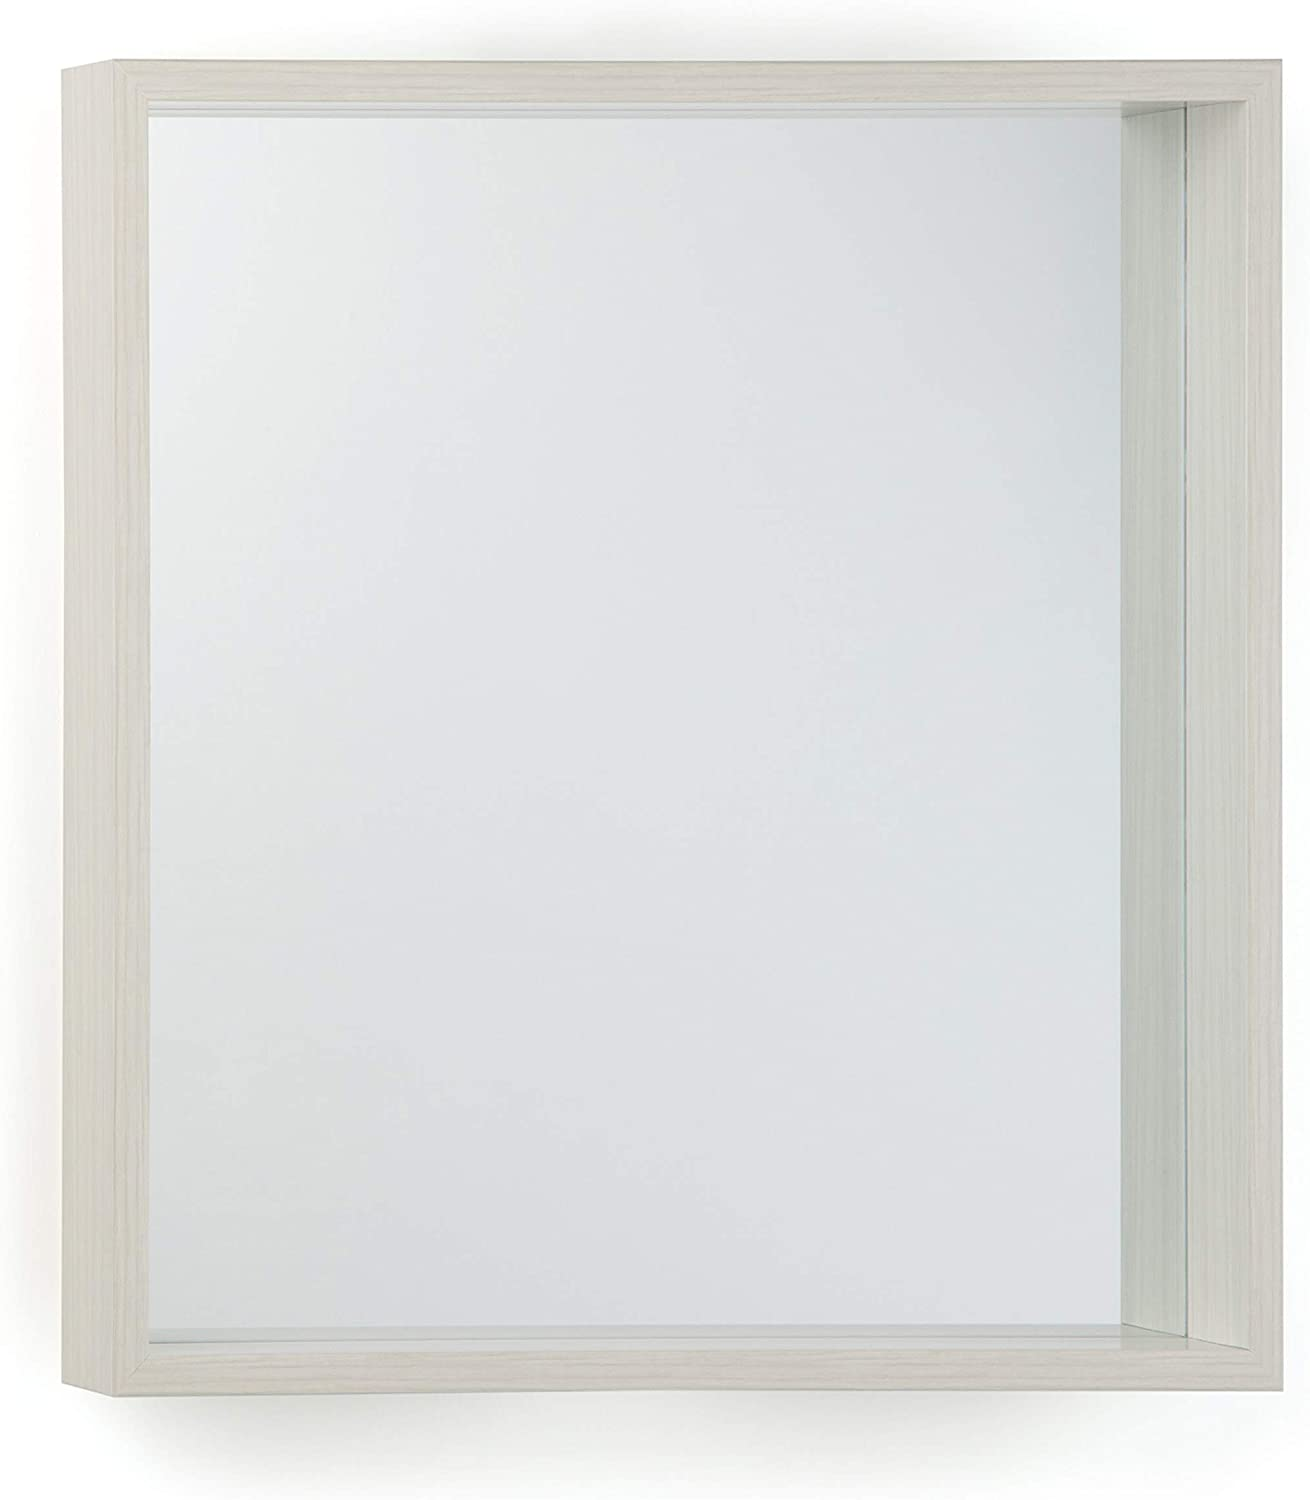 Simpli Home Armand 25 inch x 25 inch Square Transitional Décor Mirror in White Wash Stain